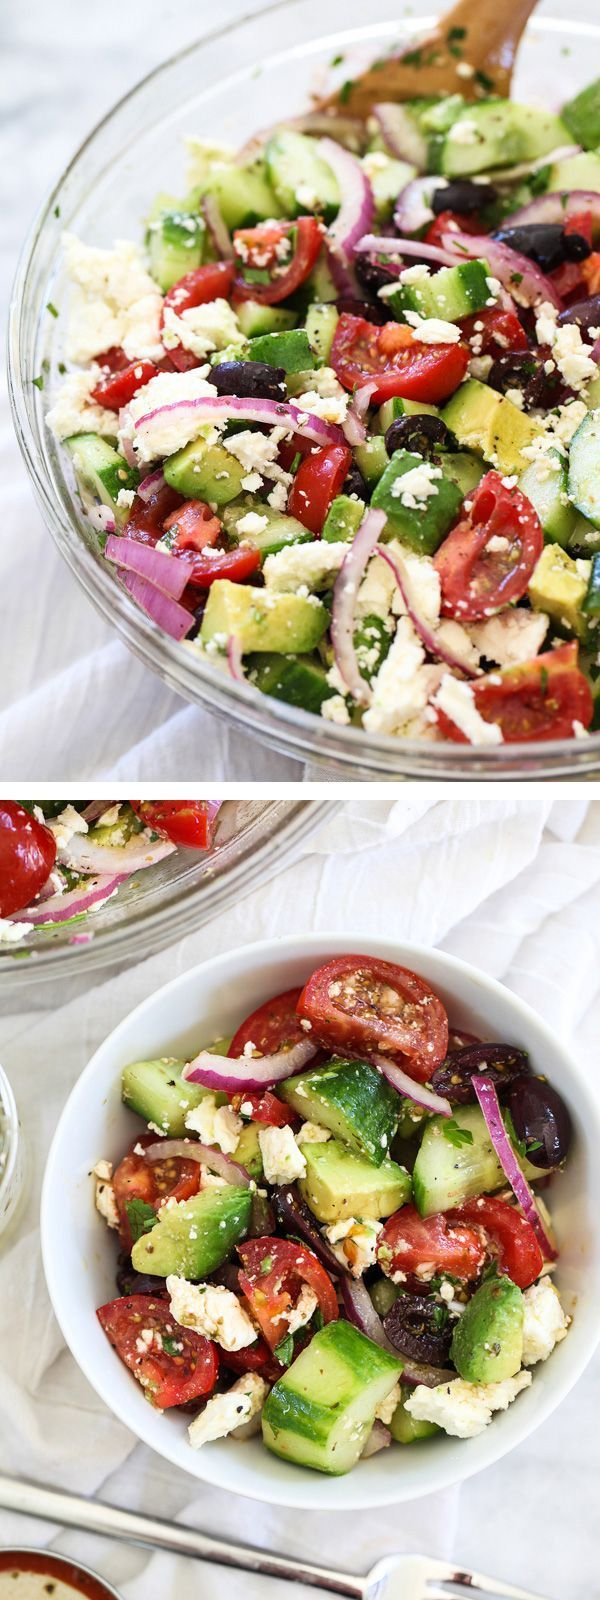 Greek Salad with Avocado and crunchy veggies is my favorite summertime salad with a tangy dressing